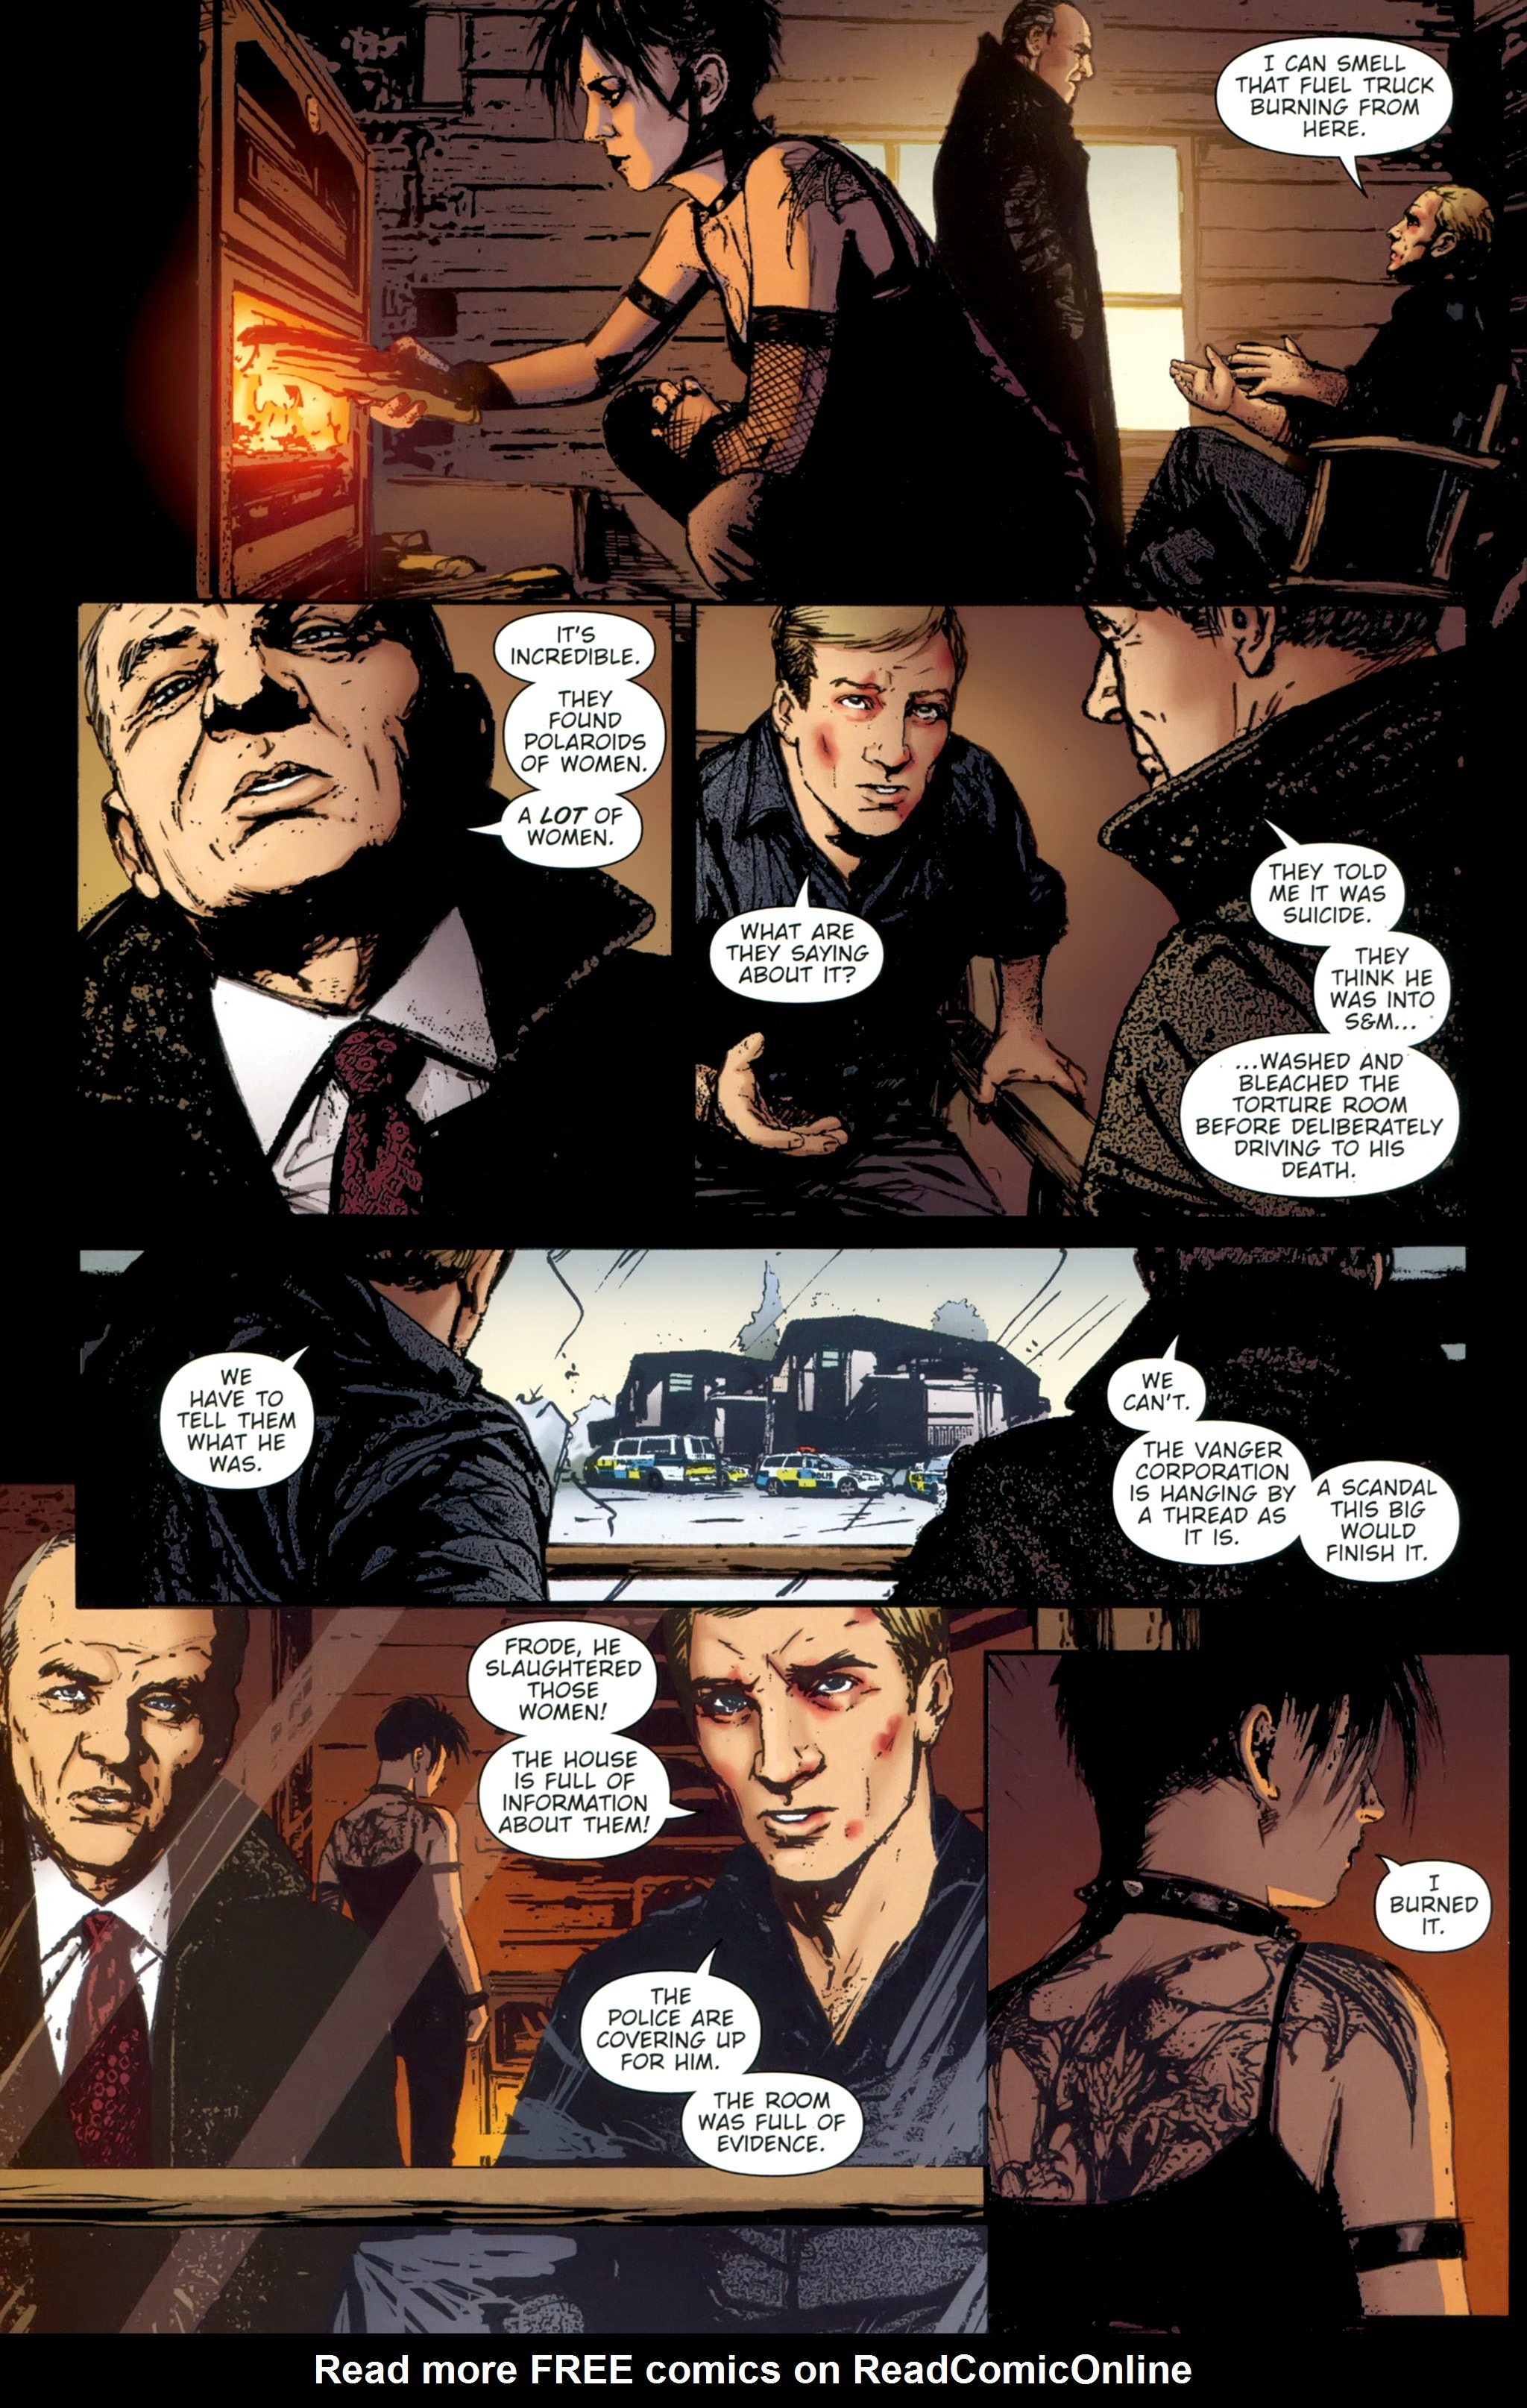 Read online The Girl With the Dragon Tattoo comic -  Issue # TPB 2 - 114